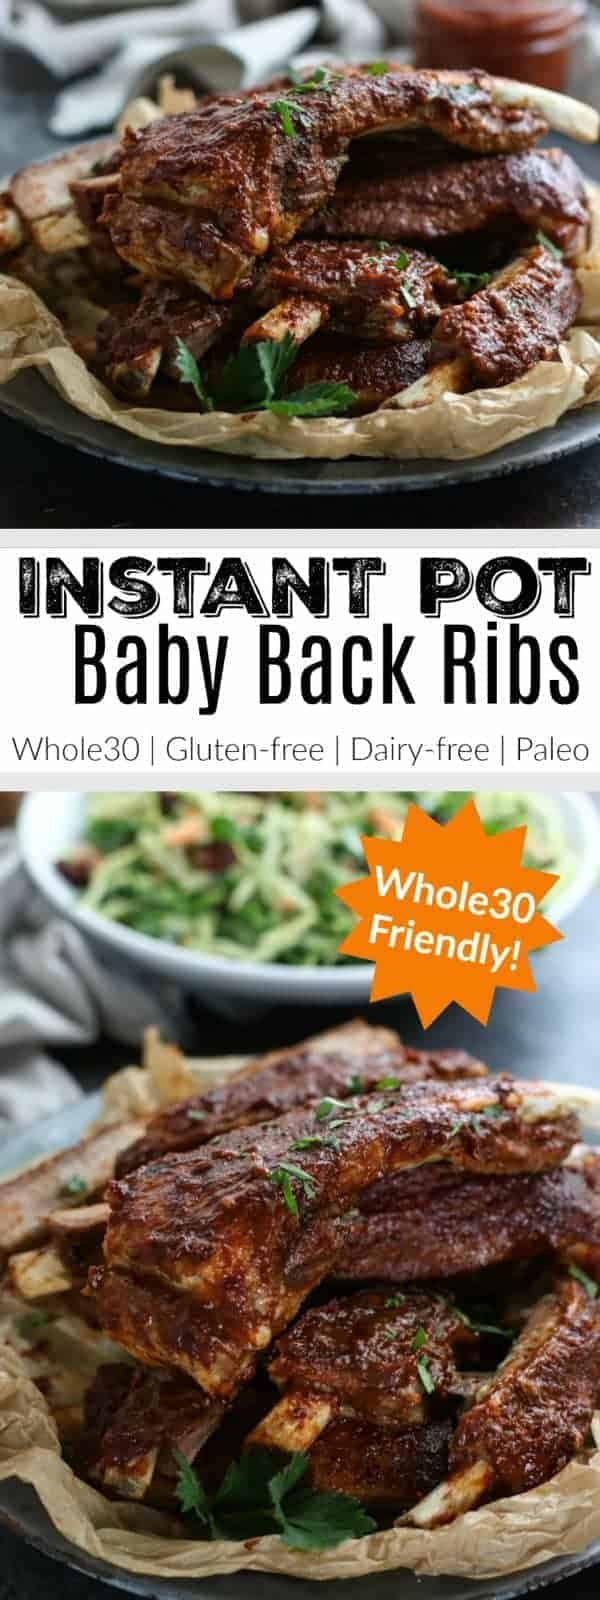 Craving BBQ ribs but don't have all day to tend the grill? No worries, these Instant Pot Baby Back Ribs are ready in under an hour!   The Real Food Dietitians   http://therealfoodrds.com/instant-pot-baby-back-ribs/